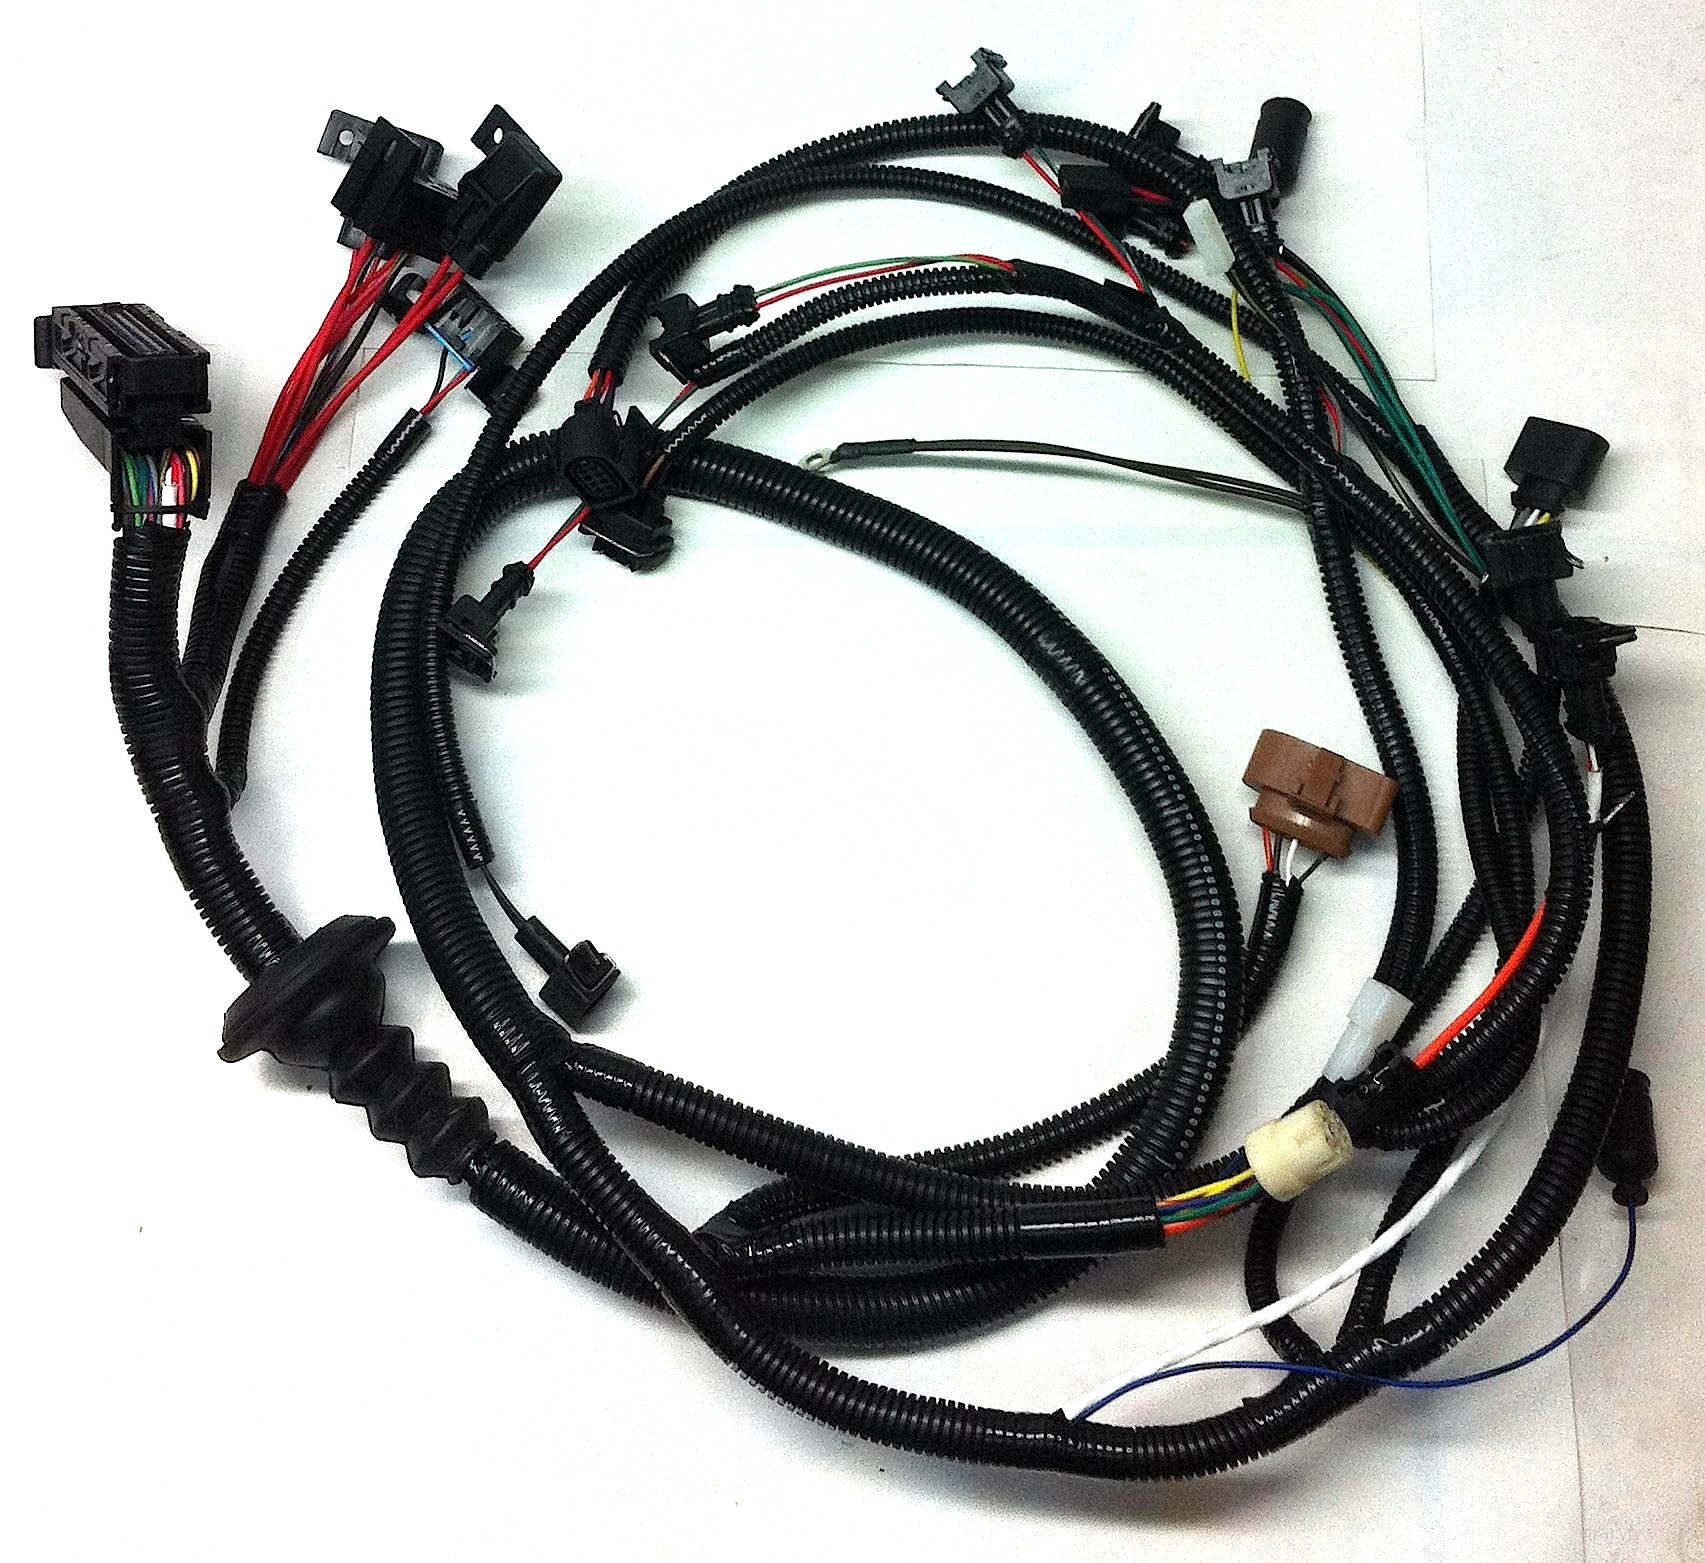 Wiring_Harness_2LR 2lr tiico conversion wiring harness foreign auto & supply, inc engine wiring harness replacement cost at gsmx.co